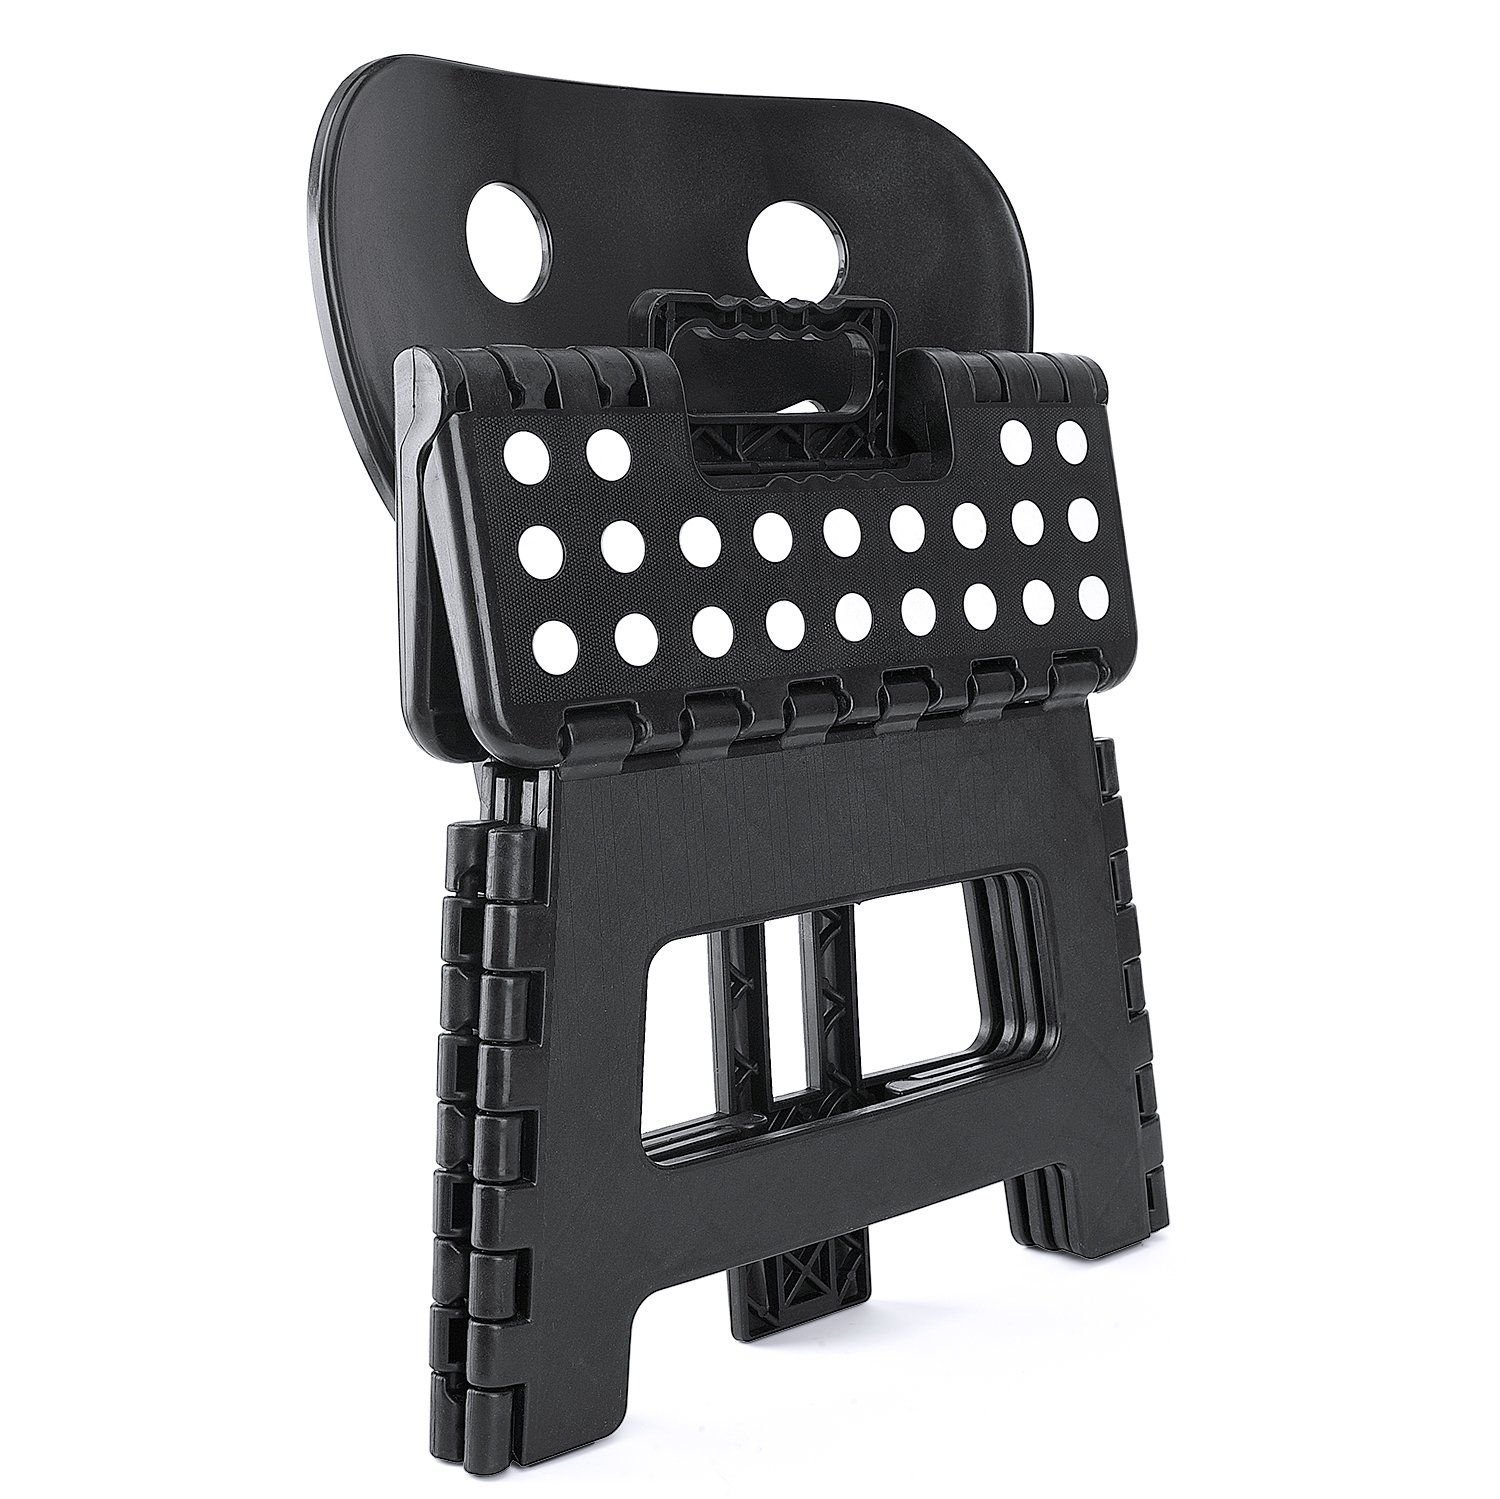 Folding Step Stool With Back Support Plastic Non Slip